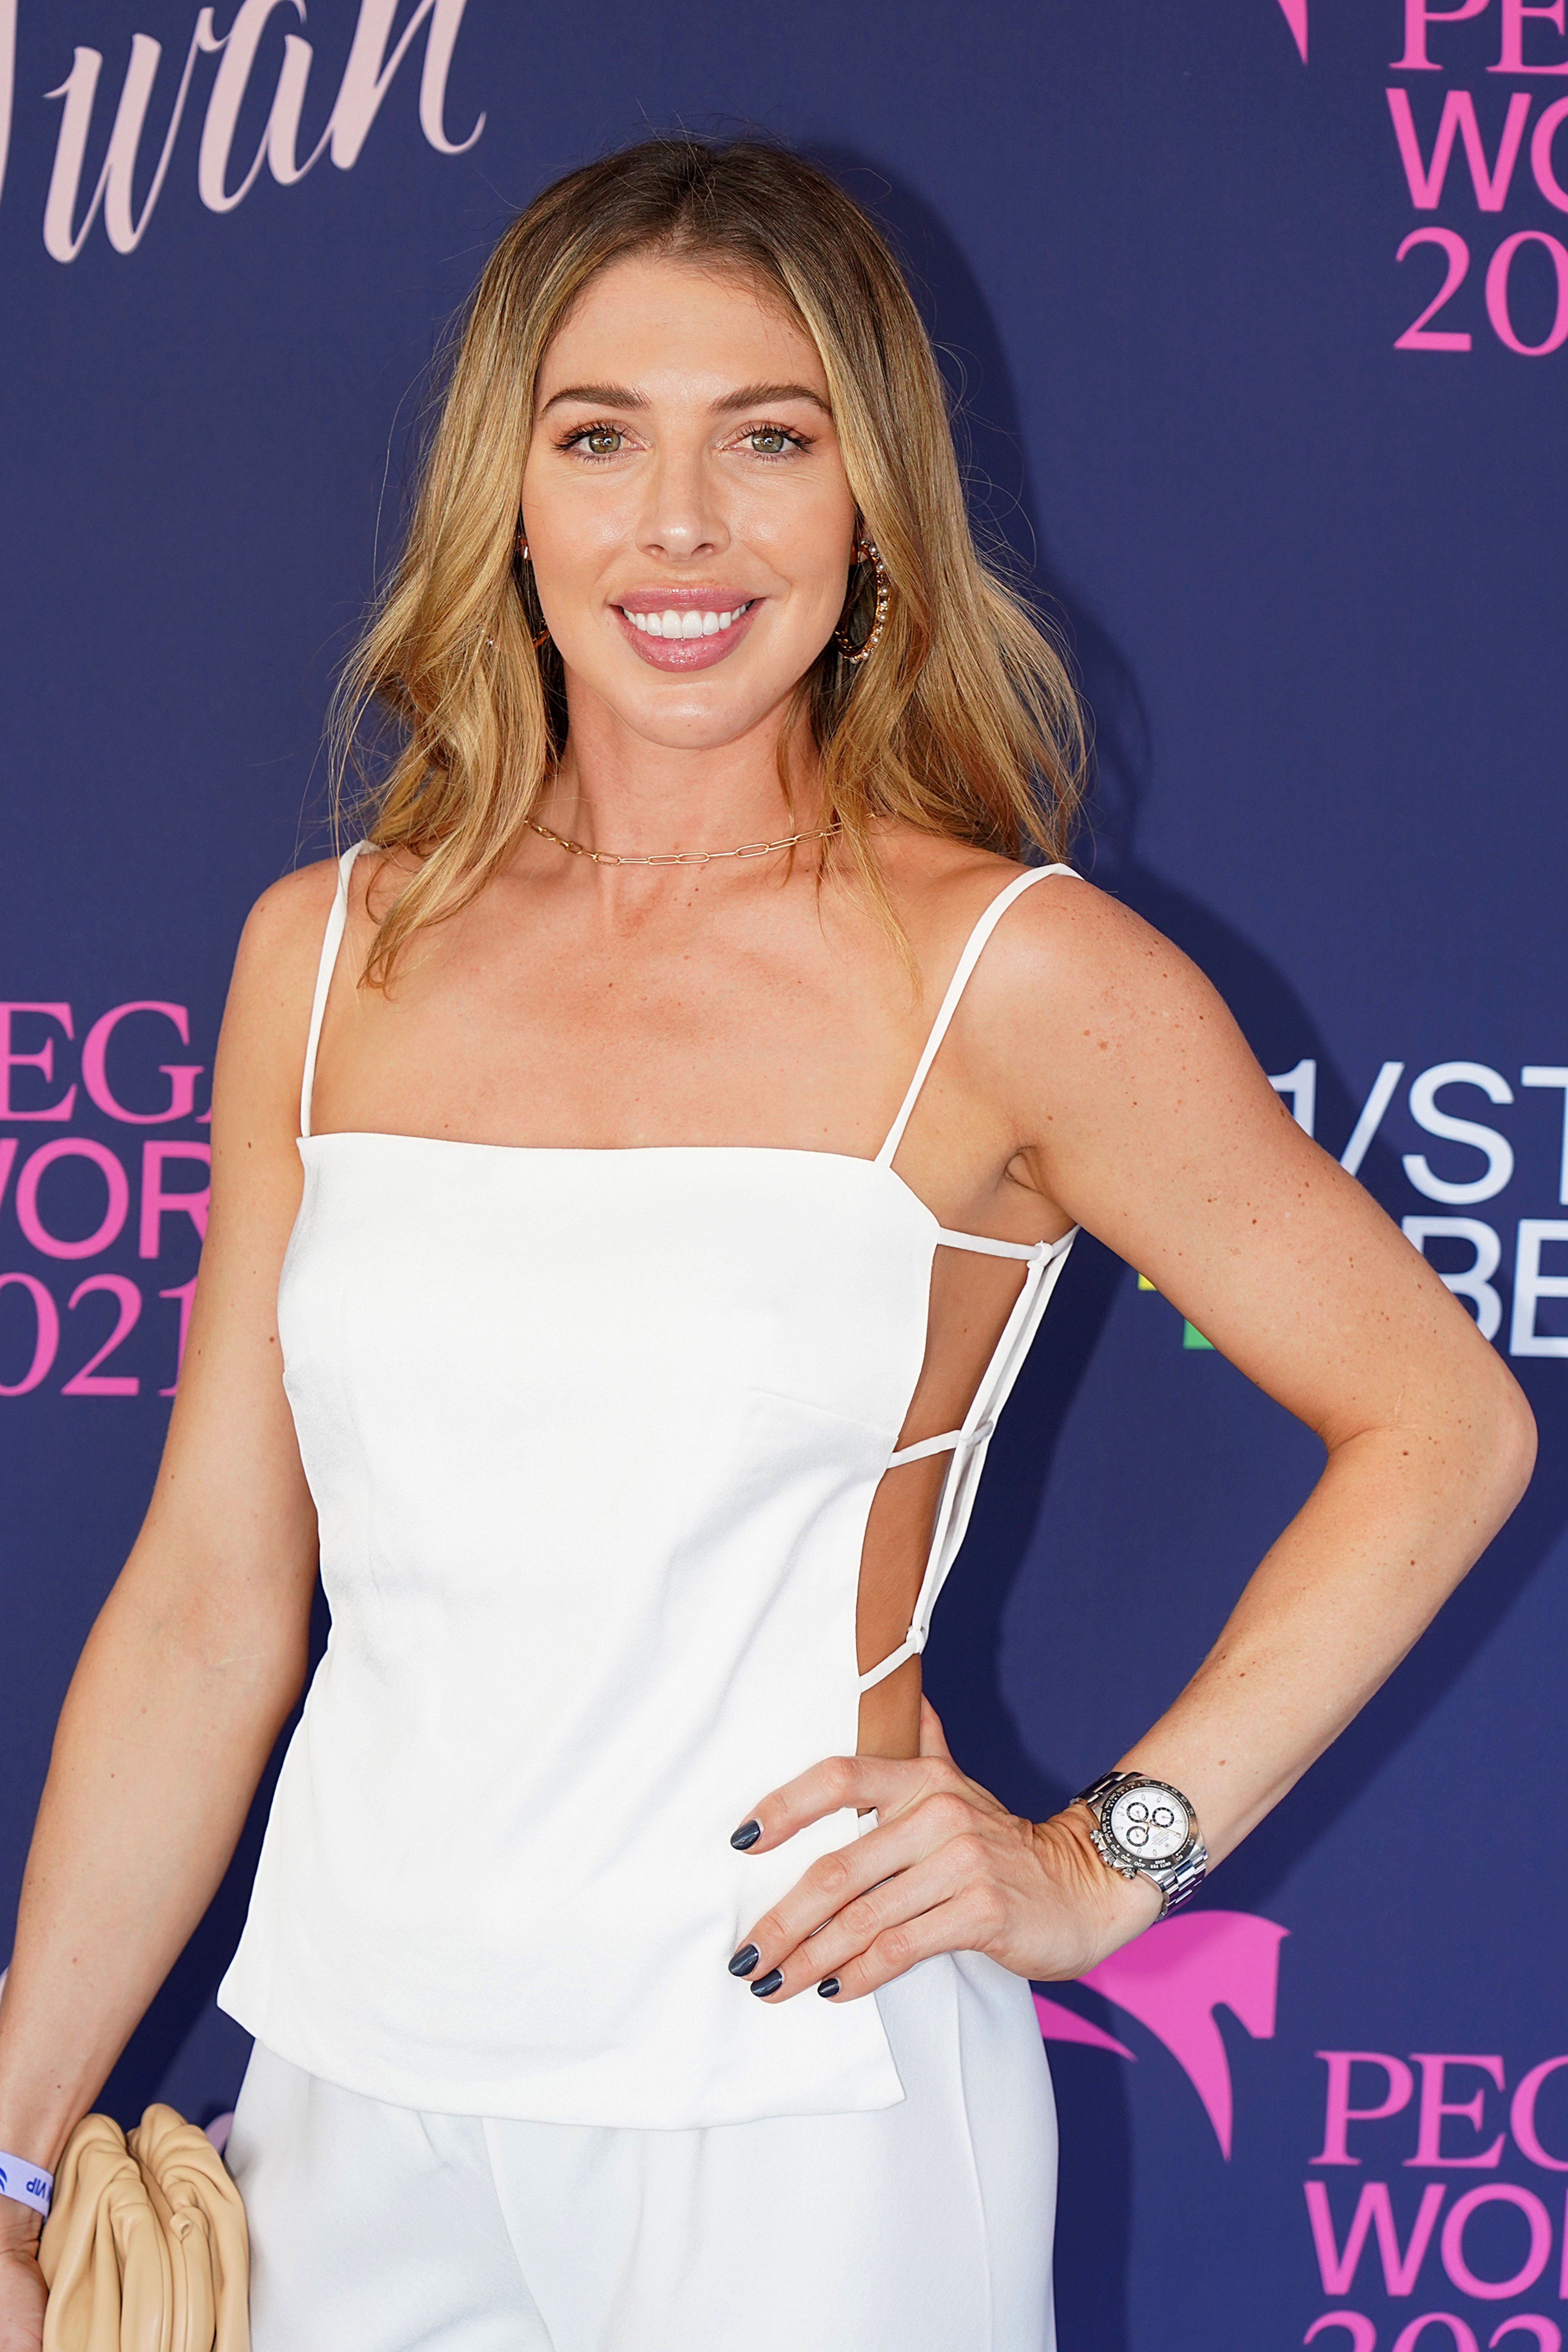 Hannah Selleck attends the 2021 Pegasus World Cup Championship Invitational Series at Gulfstream Park on January 23, 2021 in Hallandale Beach, Florida. | Source: Getty Images